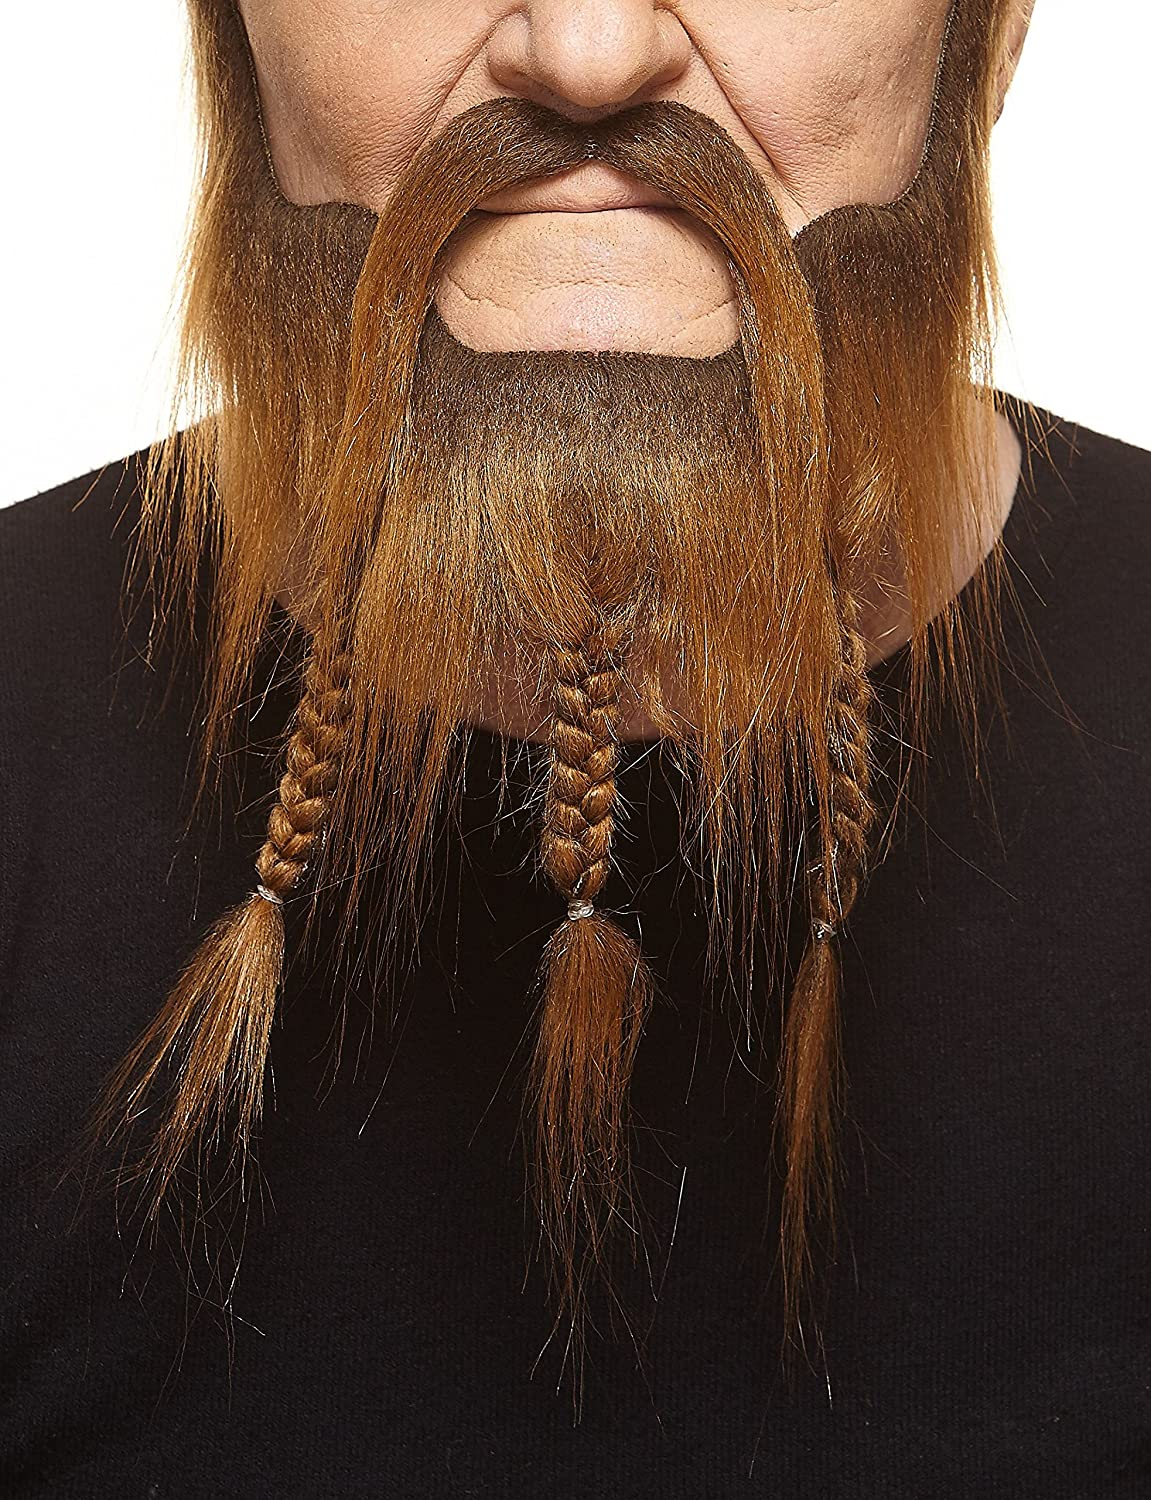 Mustaches Self Adhesive, Novelty, Braided, Fake Captain Beard Brown Color